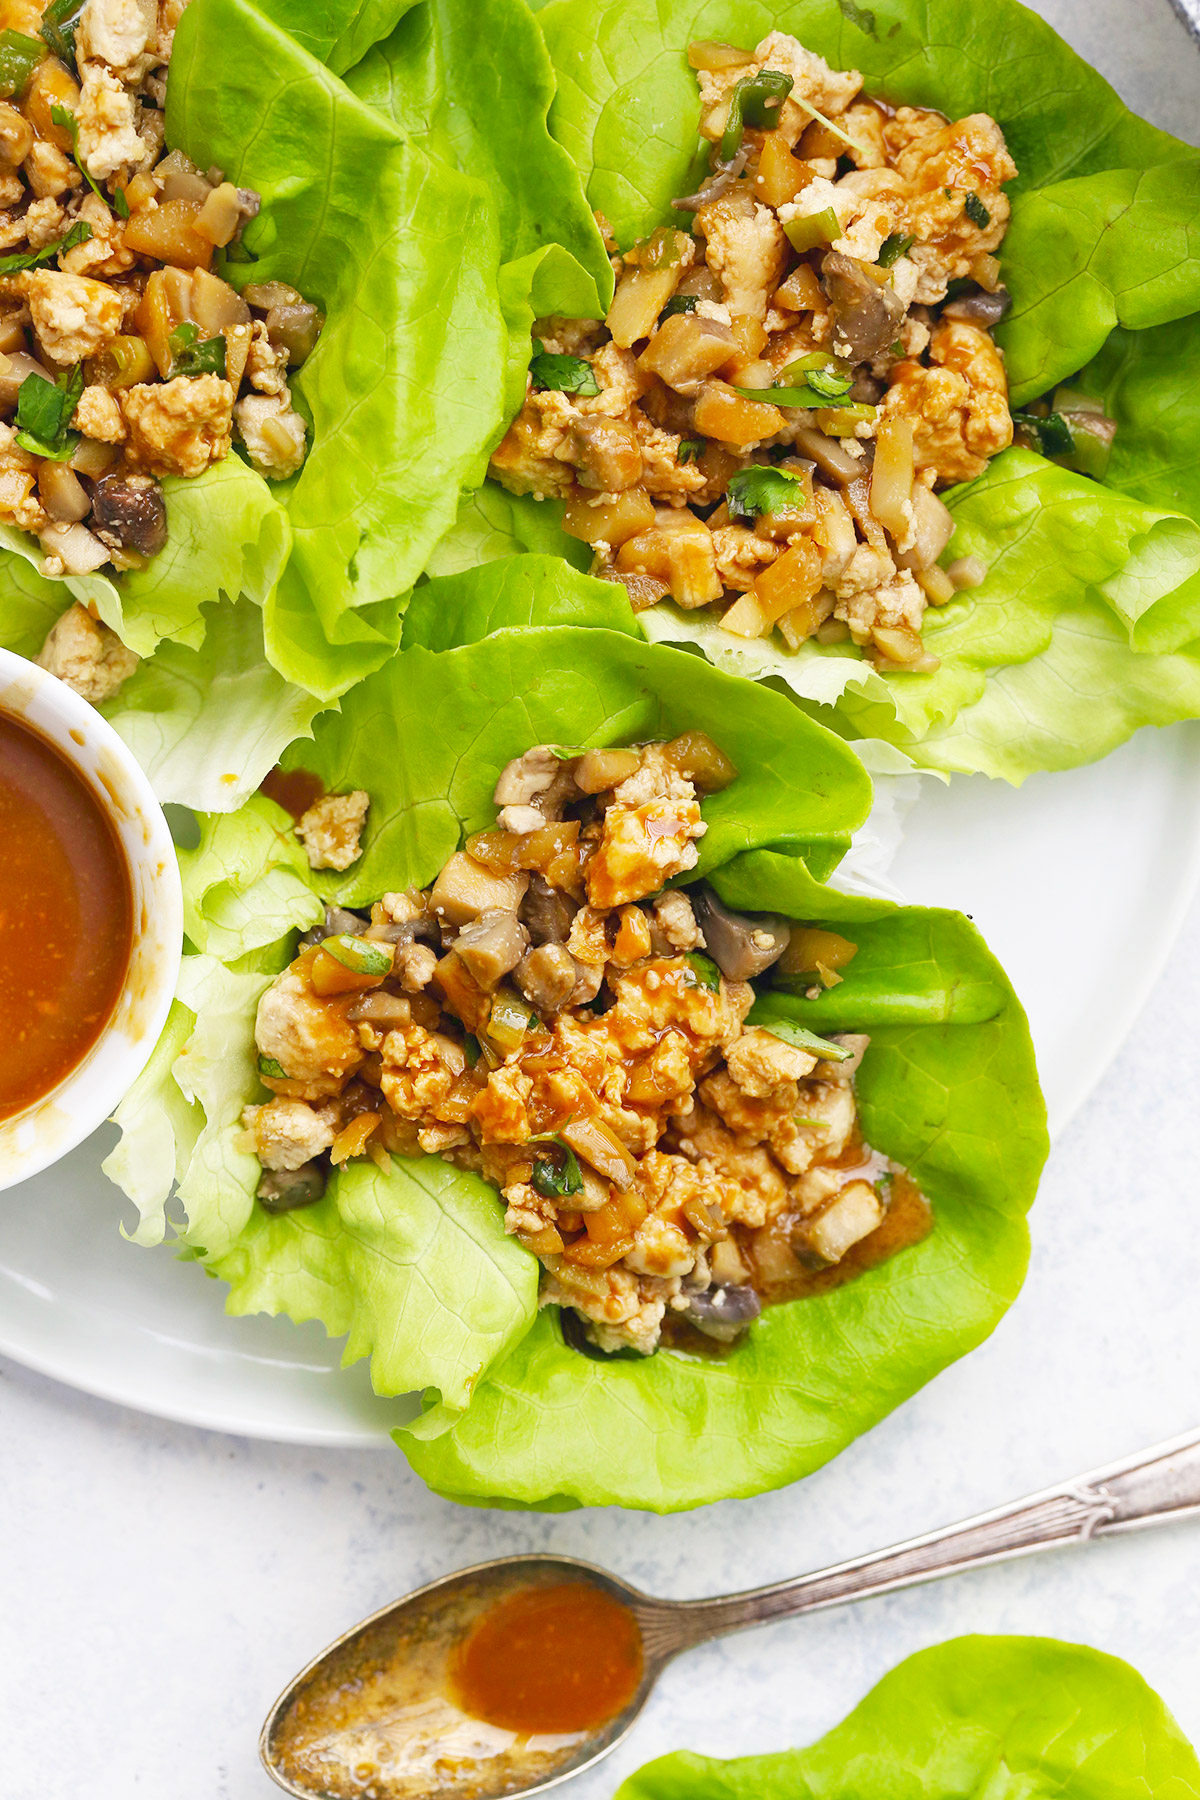 Paleo Chicken Lettuce Wraps from One Lovely Life